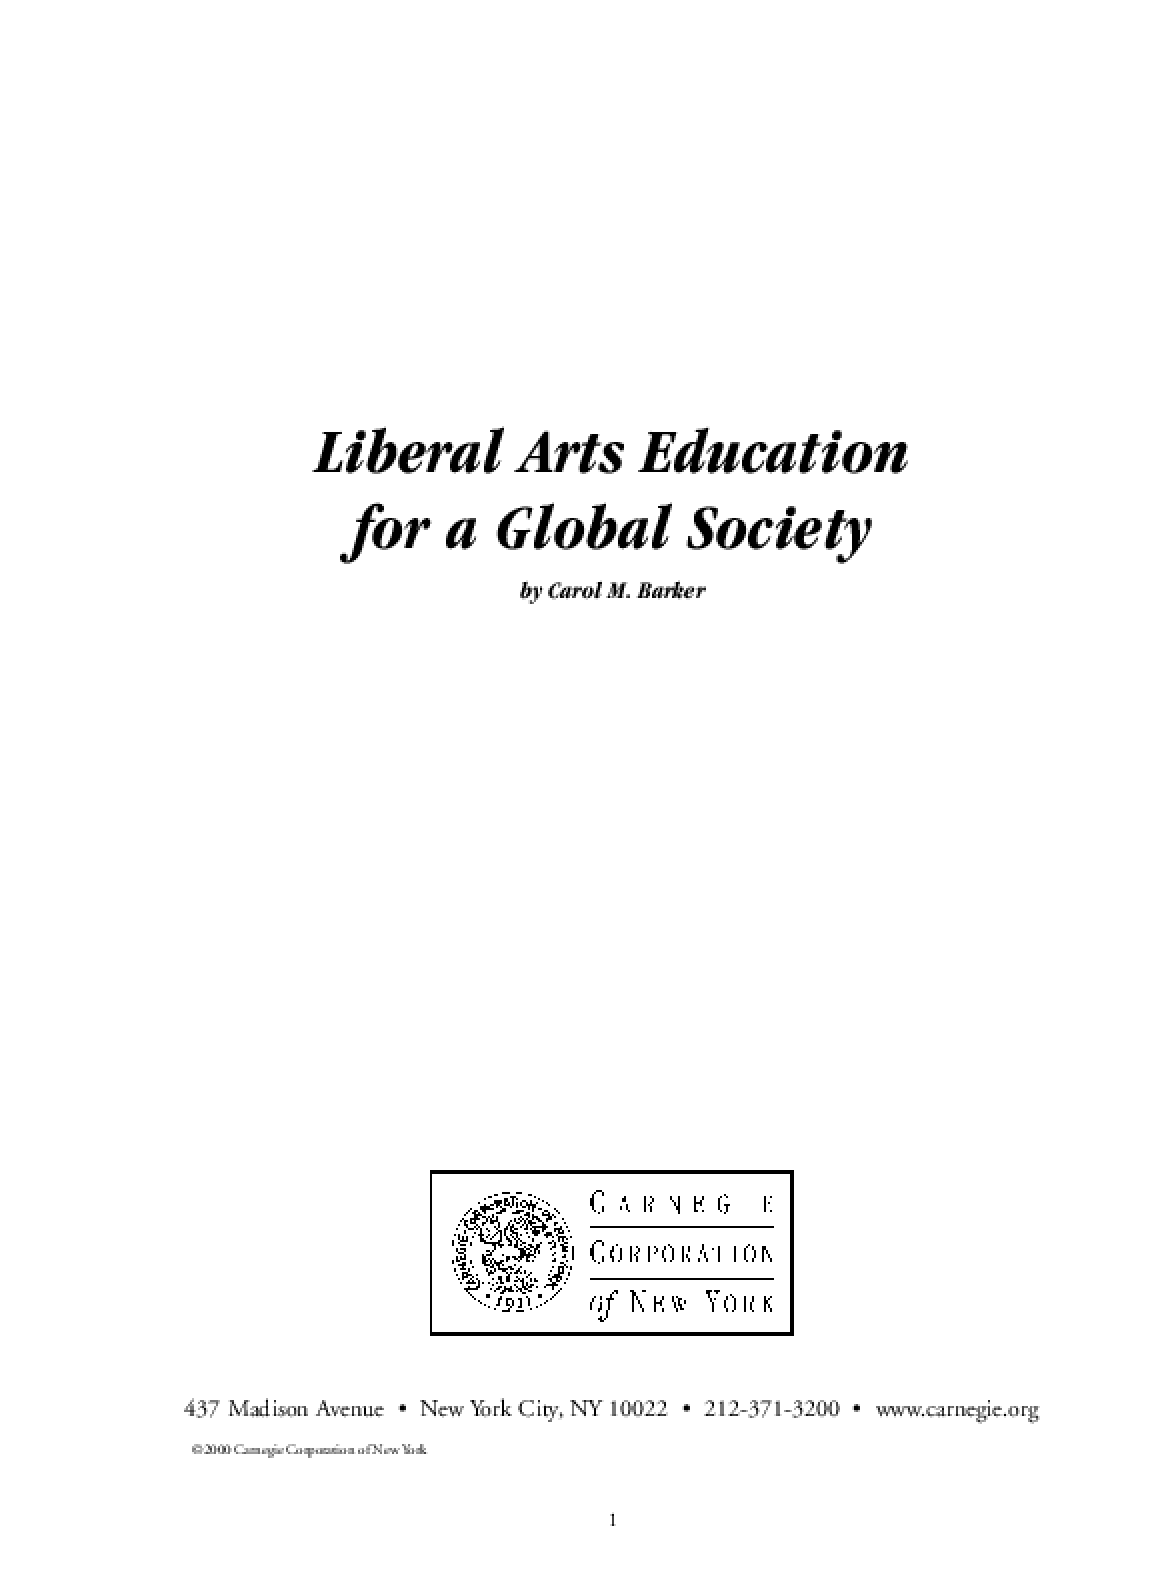 Liberal Arts Education for a Global Society